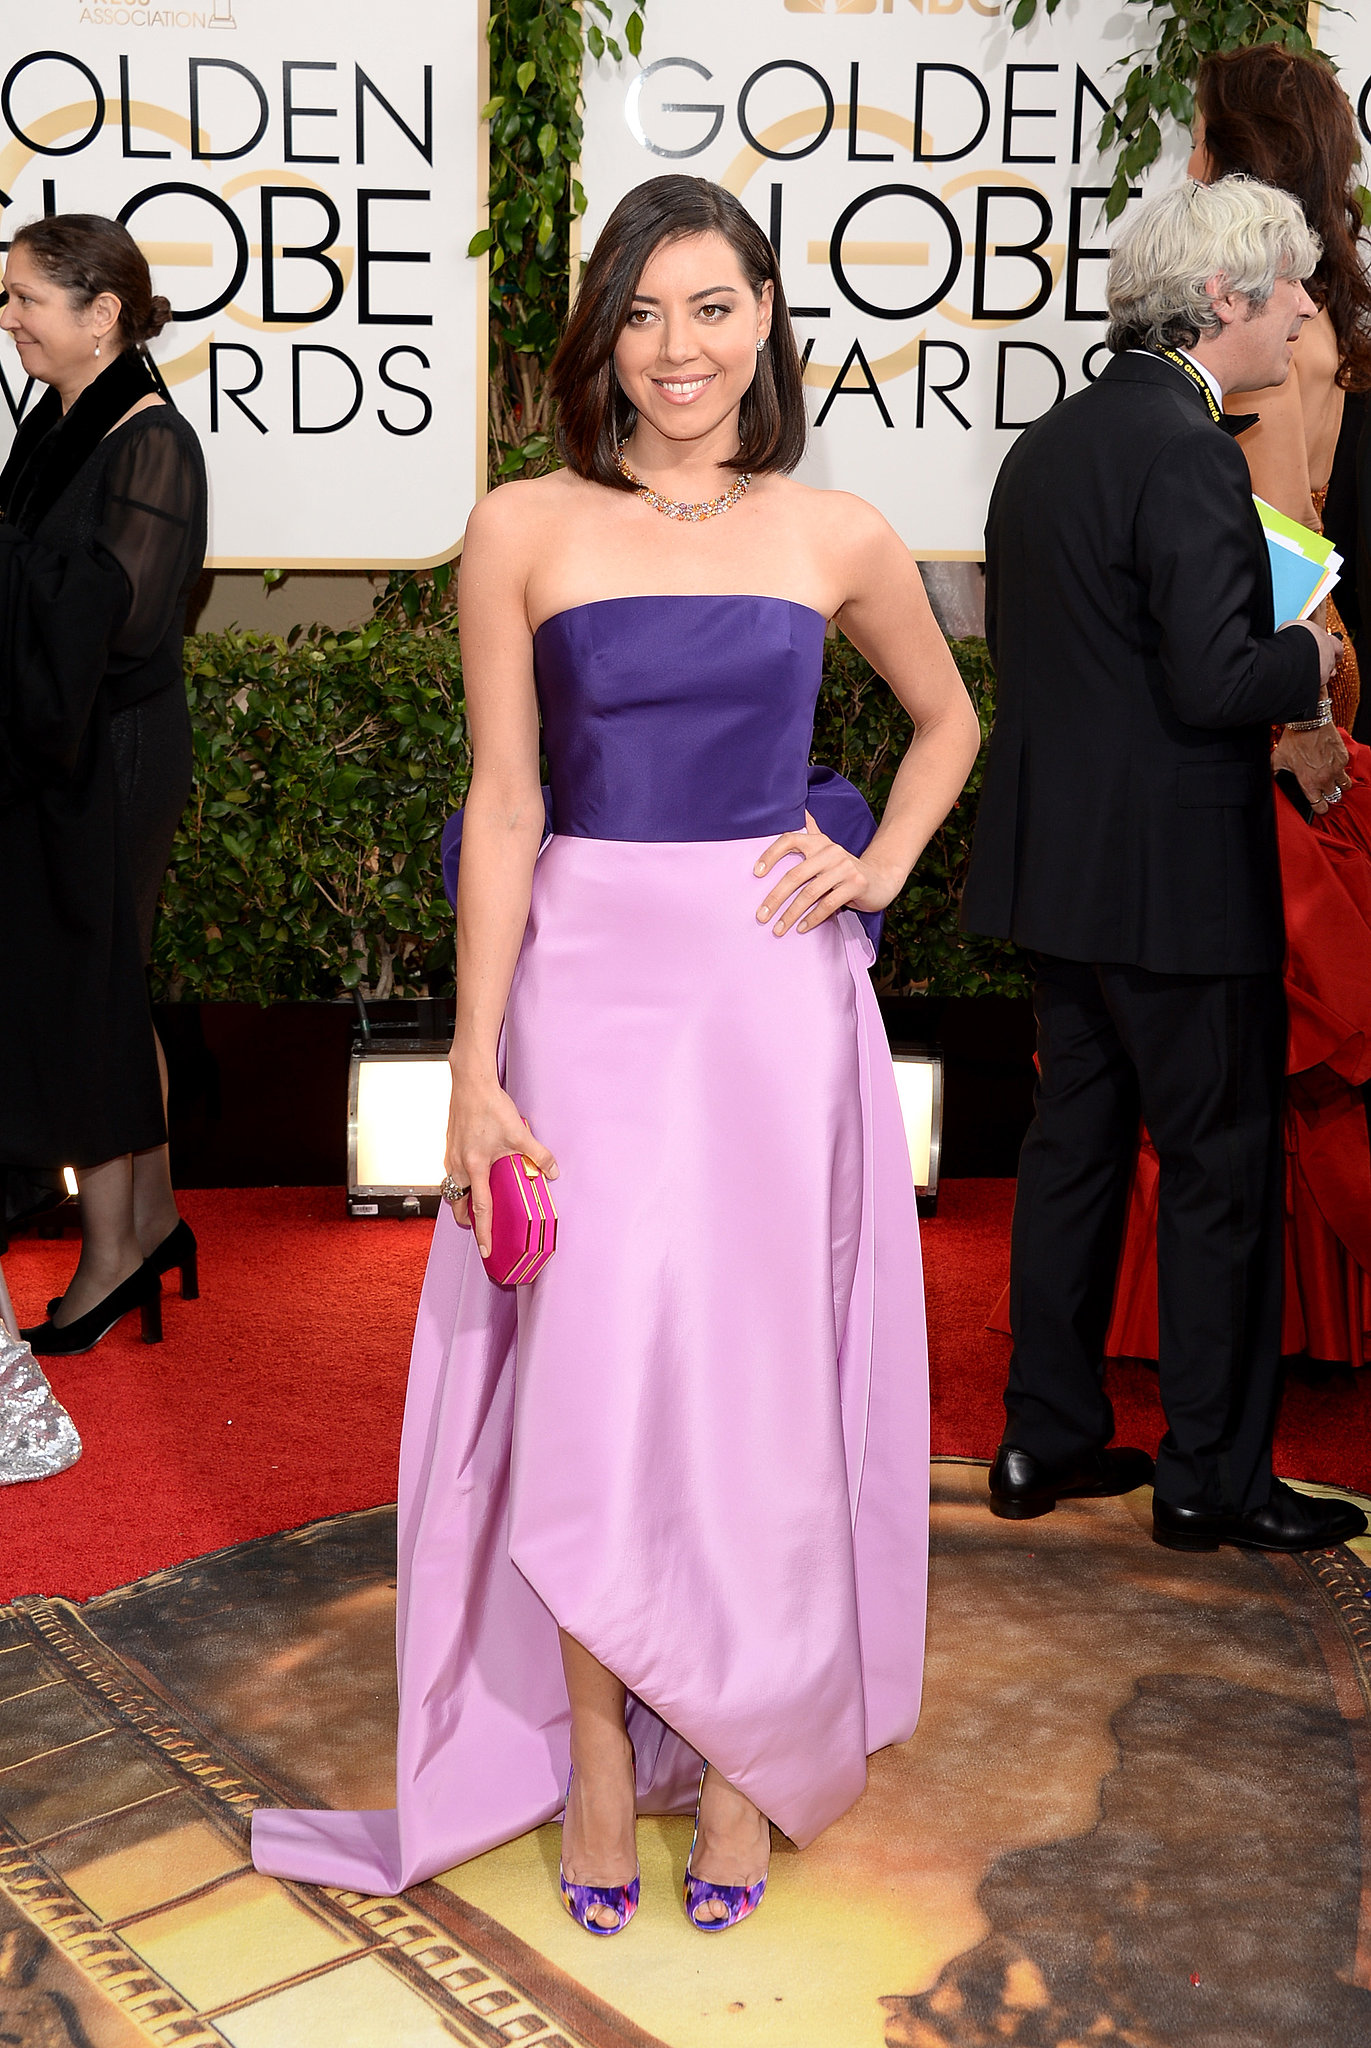 Aubrey Plaza picked a purple gown for the Golden Globes.